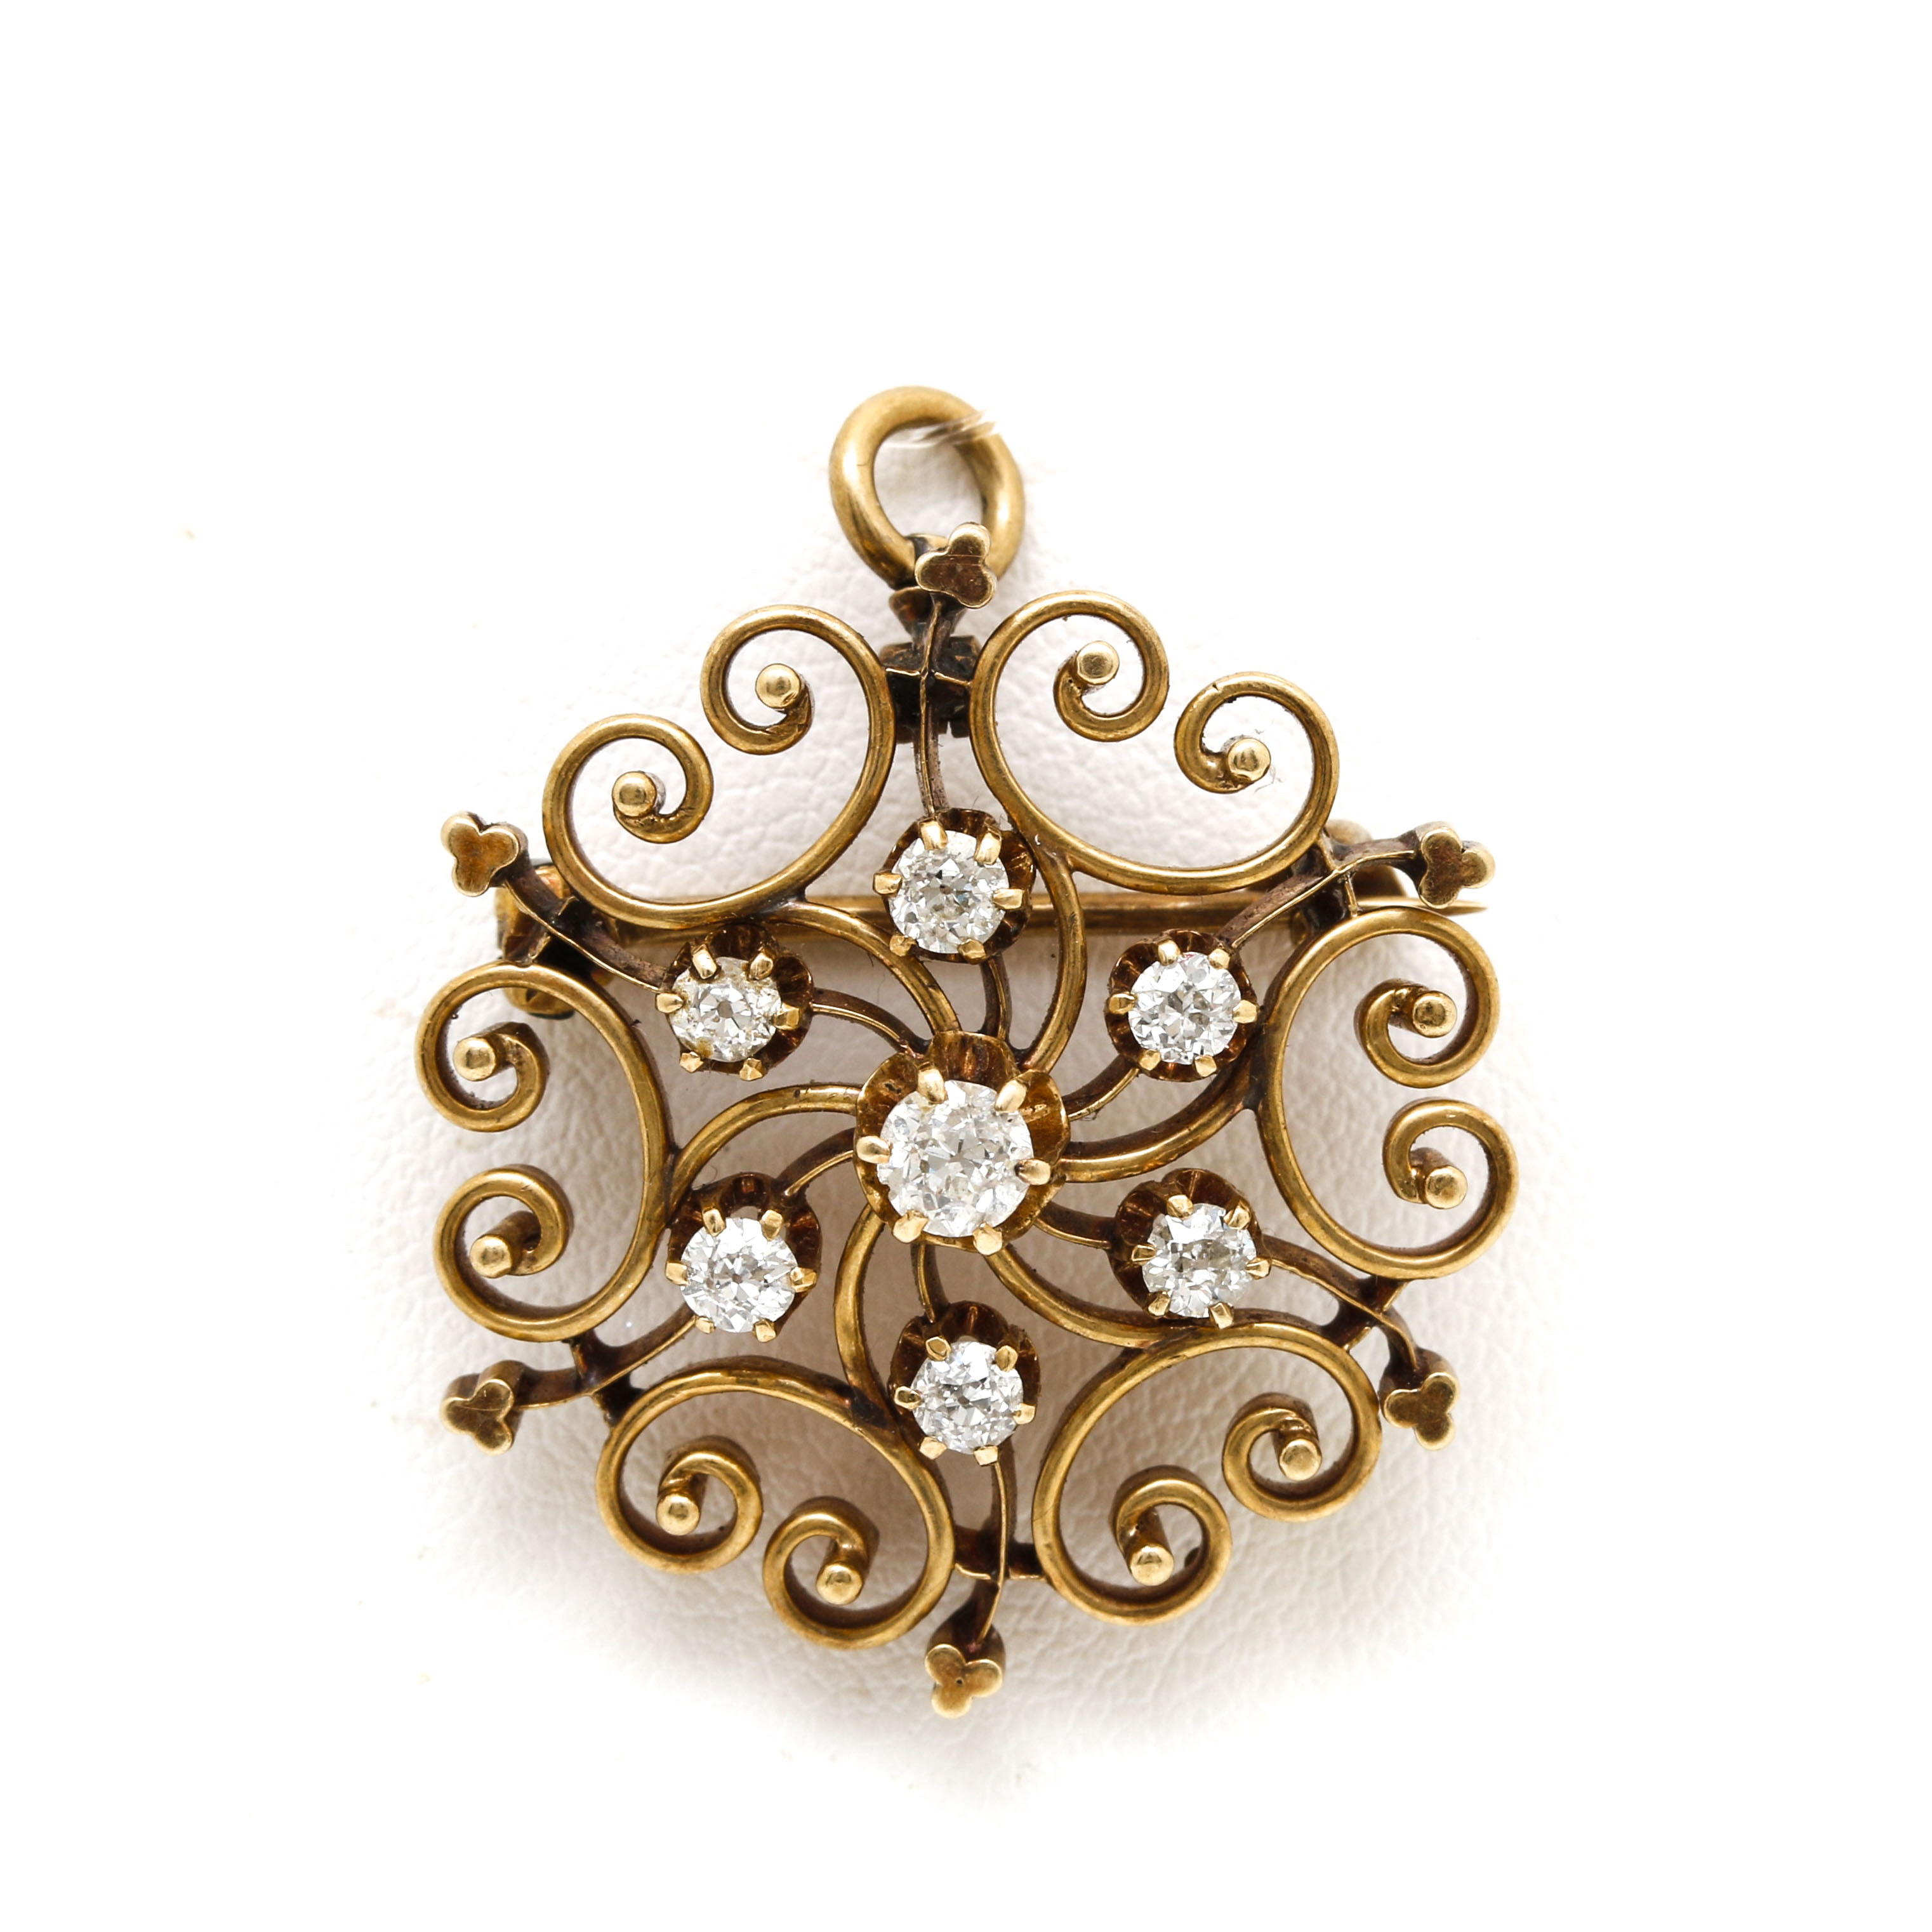 Late 1800's Antique 14K Yellow Gold Diamond Scrolled Pendant Brooch